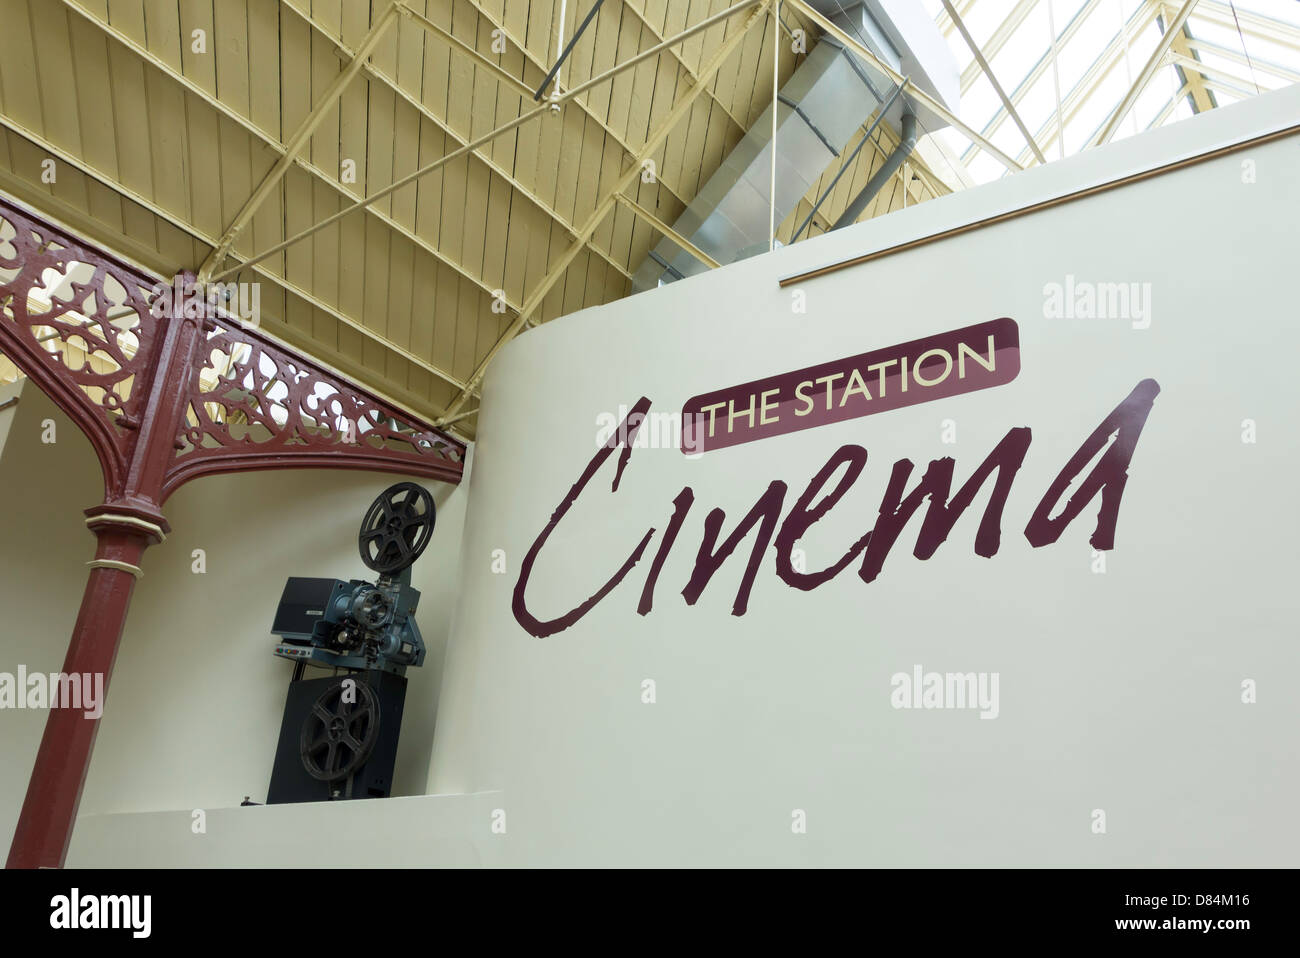 Cinema film projector at The Station a former railway train station at Richmond Yorkshire now an arts centre cinema - Stock Image